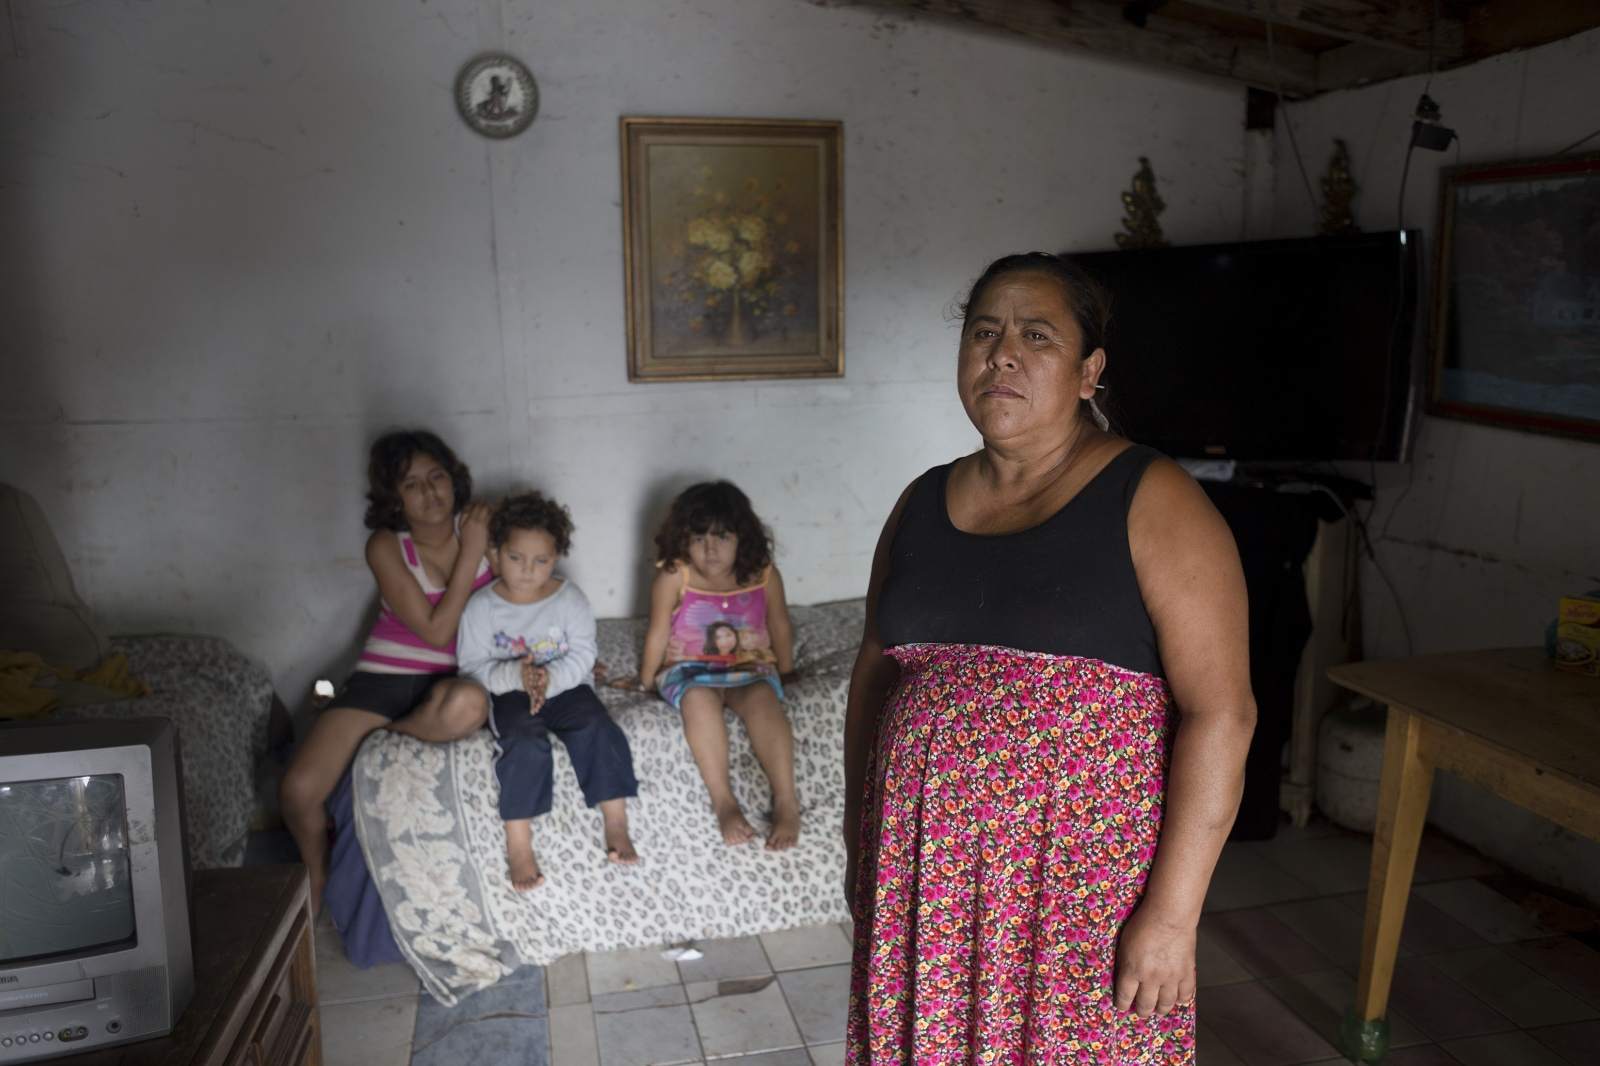 Leticia Abad stands with some of her children and grandchildren inside their small home in Rosarito, Mexico. Her partner, Augustin, is a deported veteran and is currently in rehab for alcoholism. He was recently diagnosed with cirrhosis of the liver and is petitioning for a humanitarian parole visa to allow him back into the U.S. for a liver transplant.